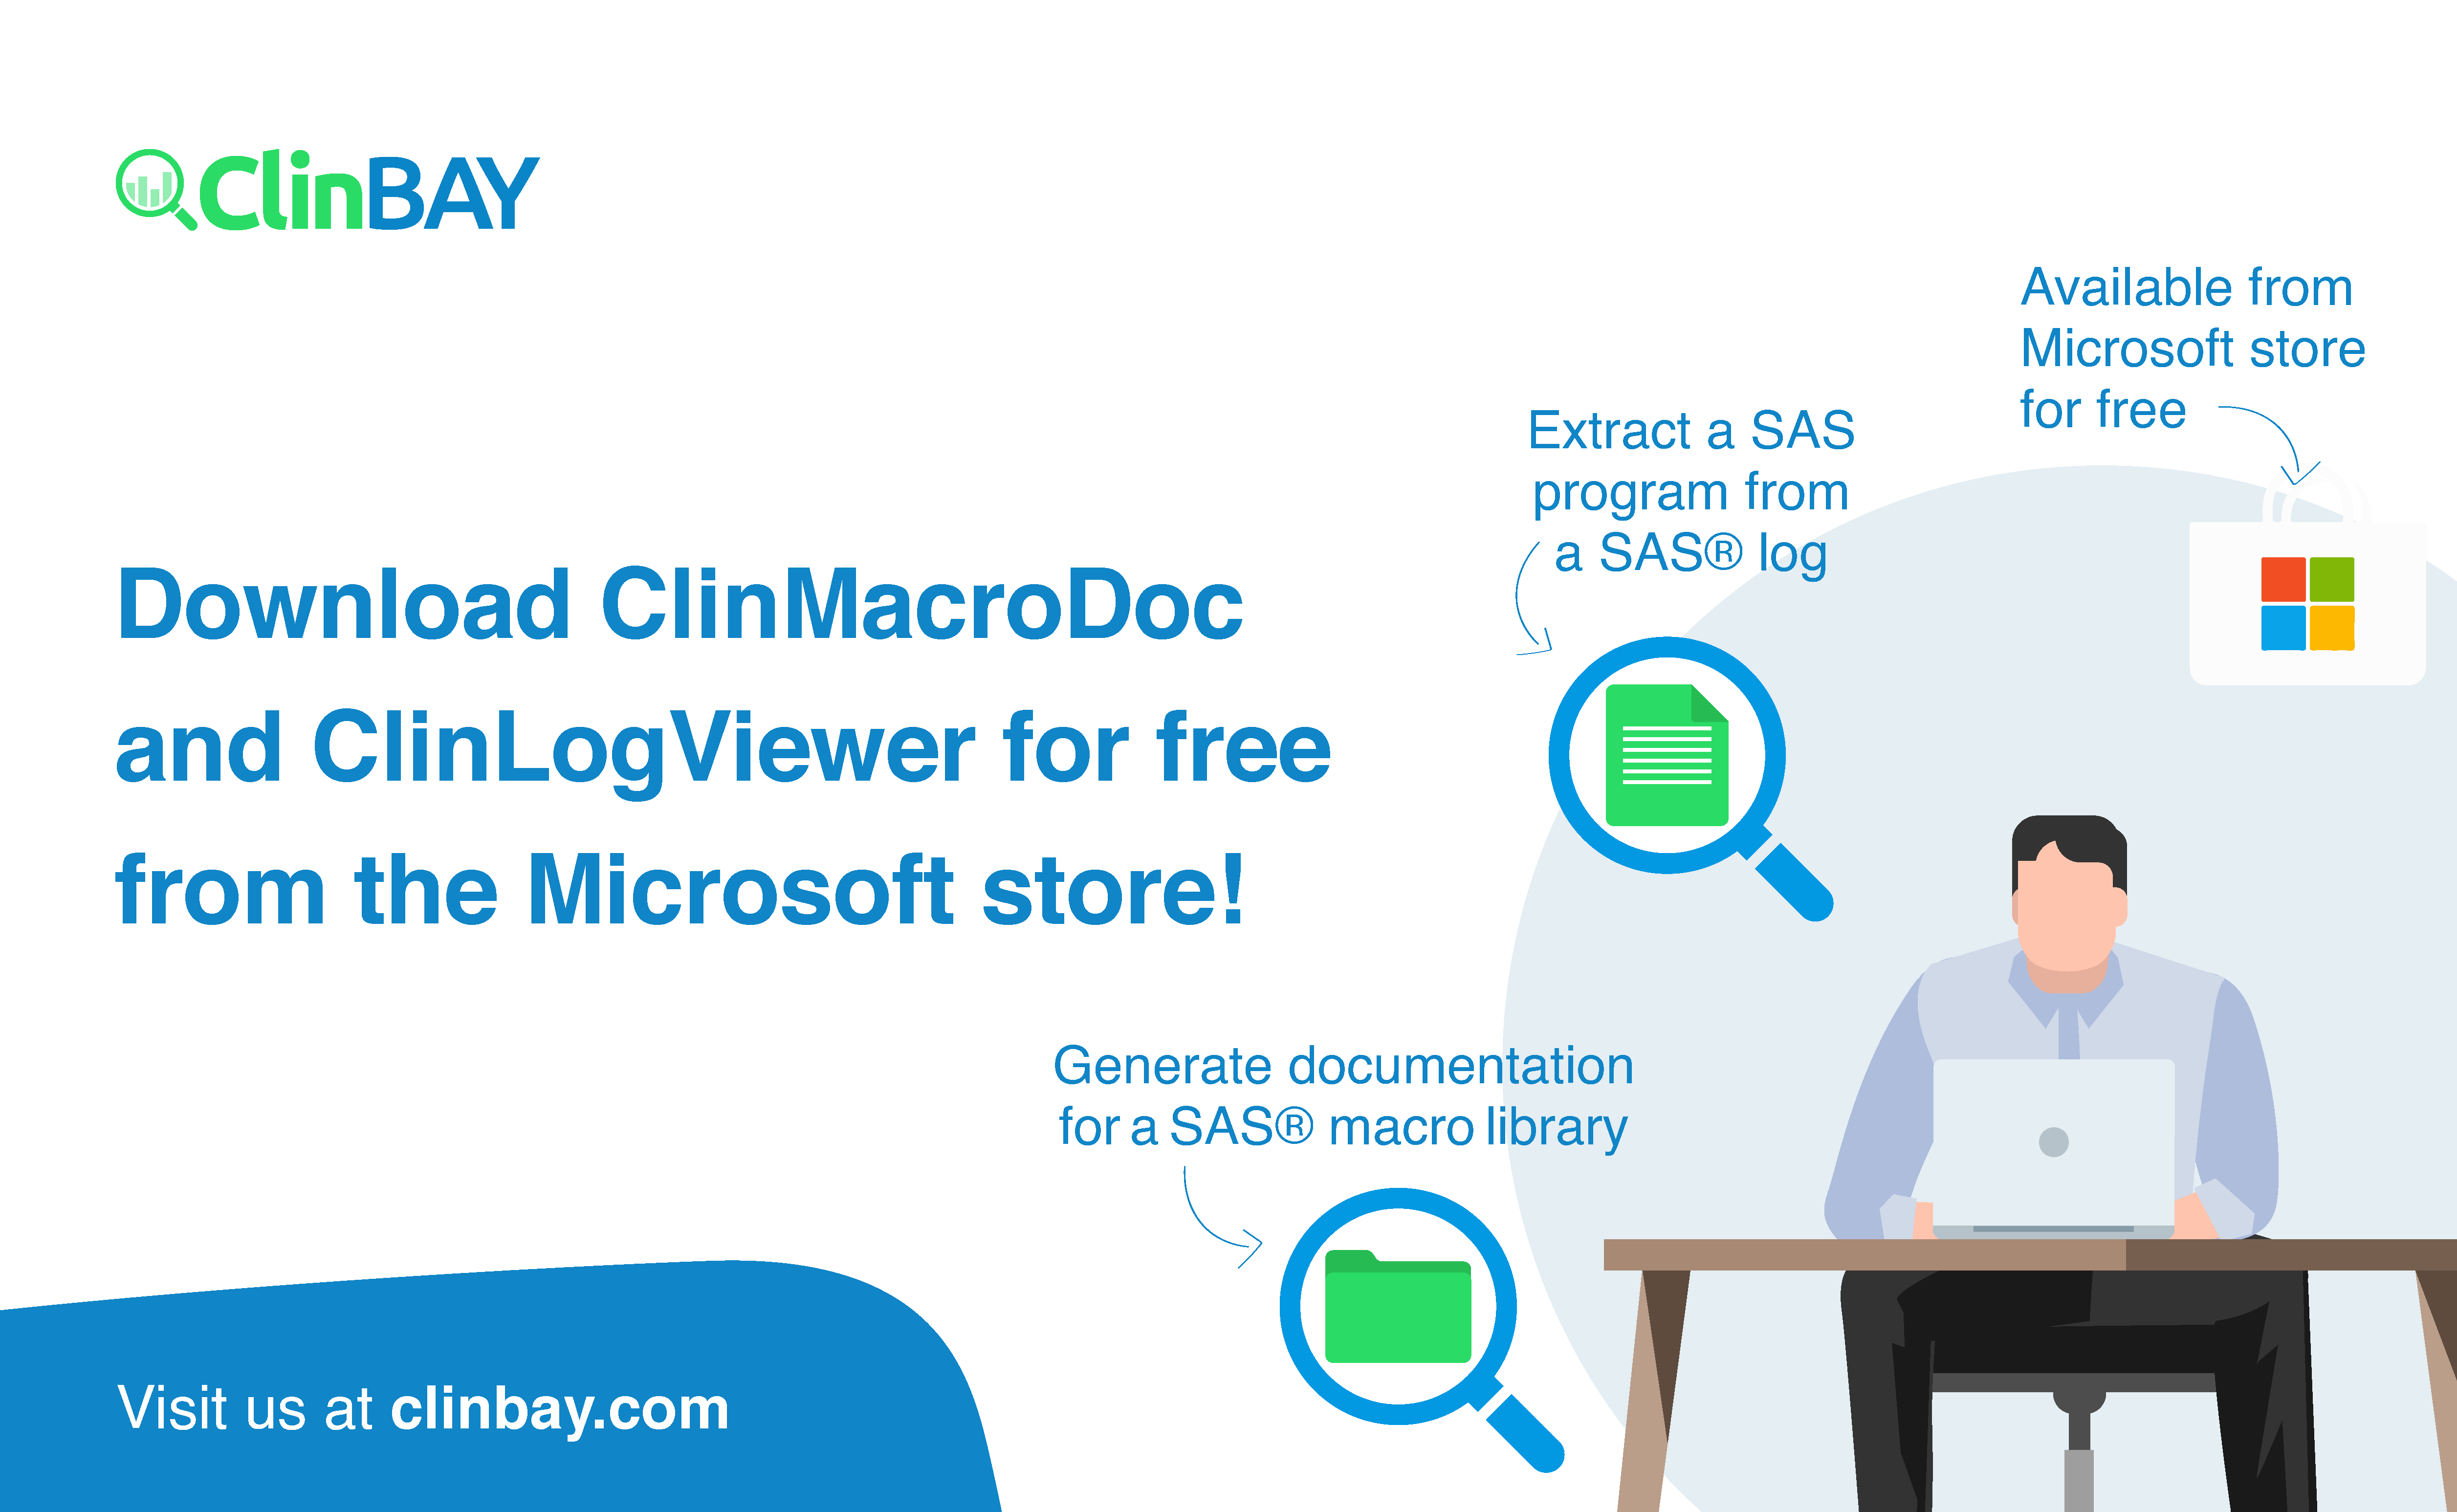 ClinBAY software available on Microsoft Store